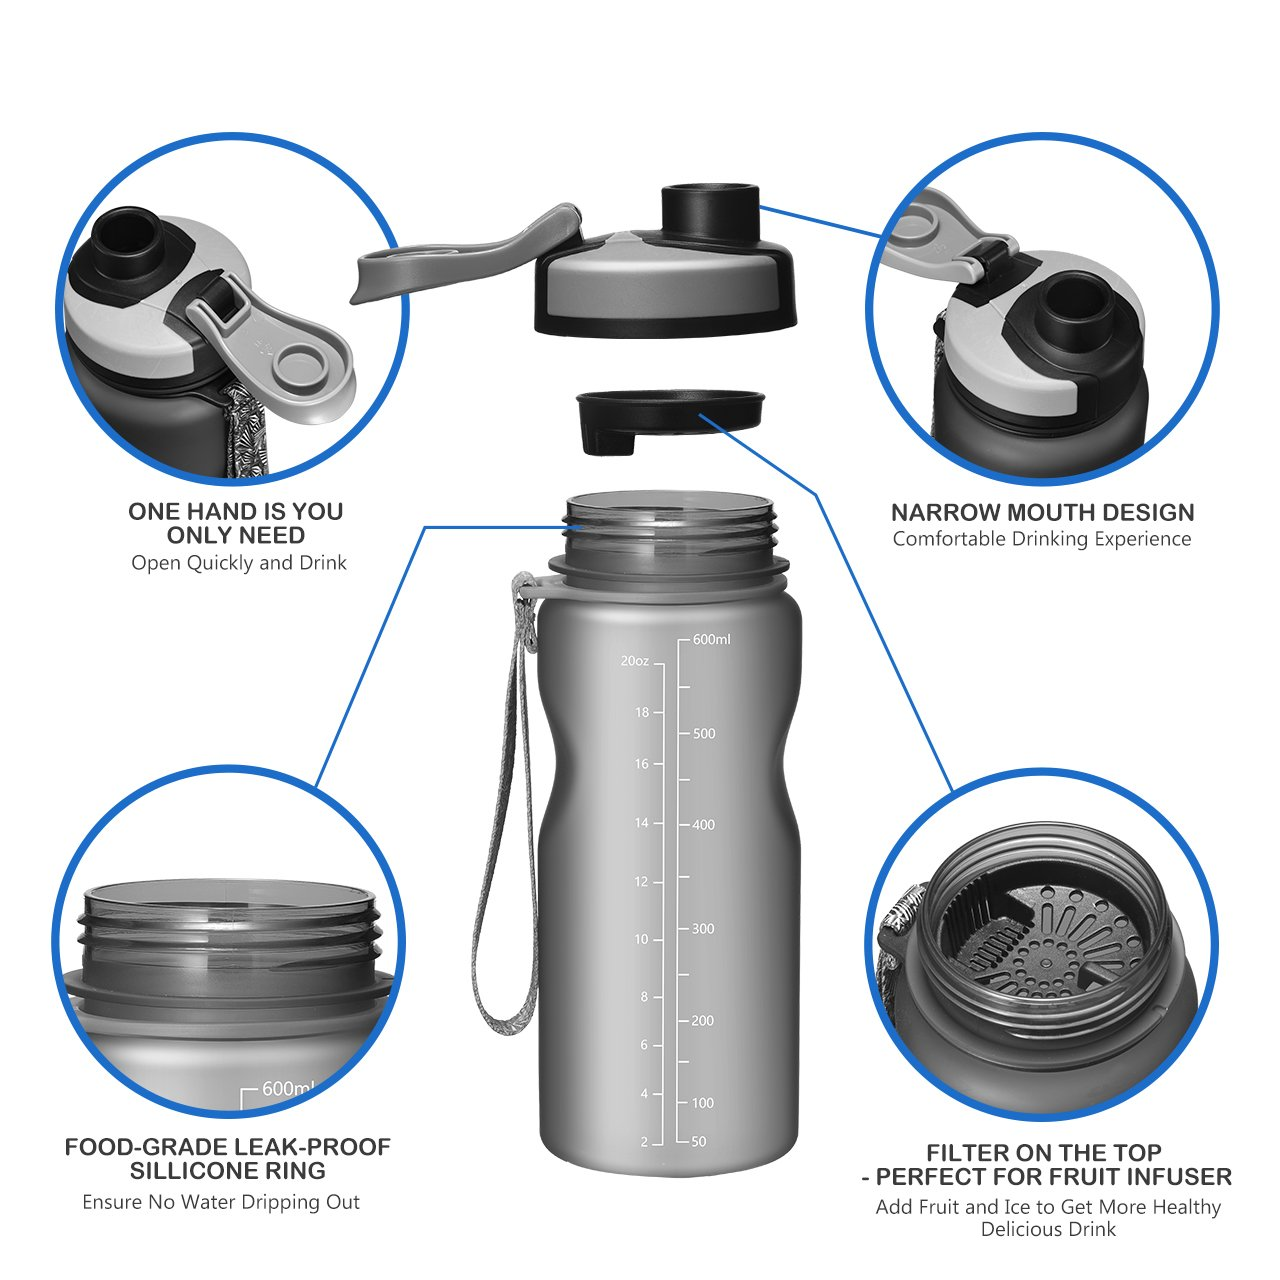 Running BPA Free Tritan Hard Materials OTGEOD196AH-USAA1 OMORC Sports Water Bottle BPA Free /& Eco-Friendly Tritan Bottle Great for Outdoor Bicycle Camping Flip Top Leak Proof Lid One Click Open